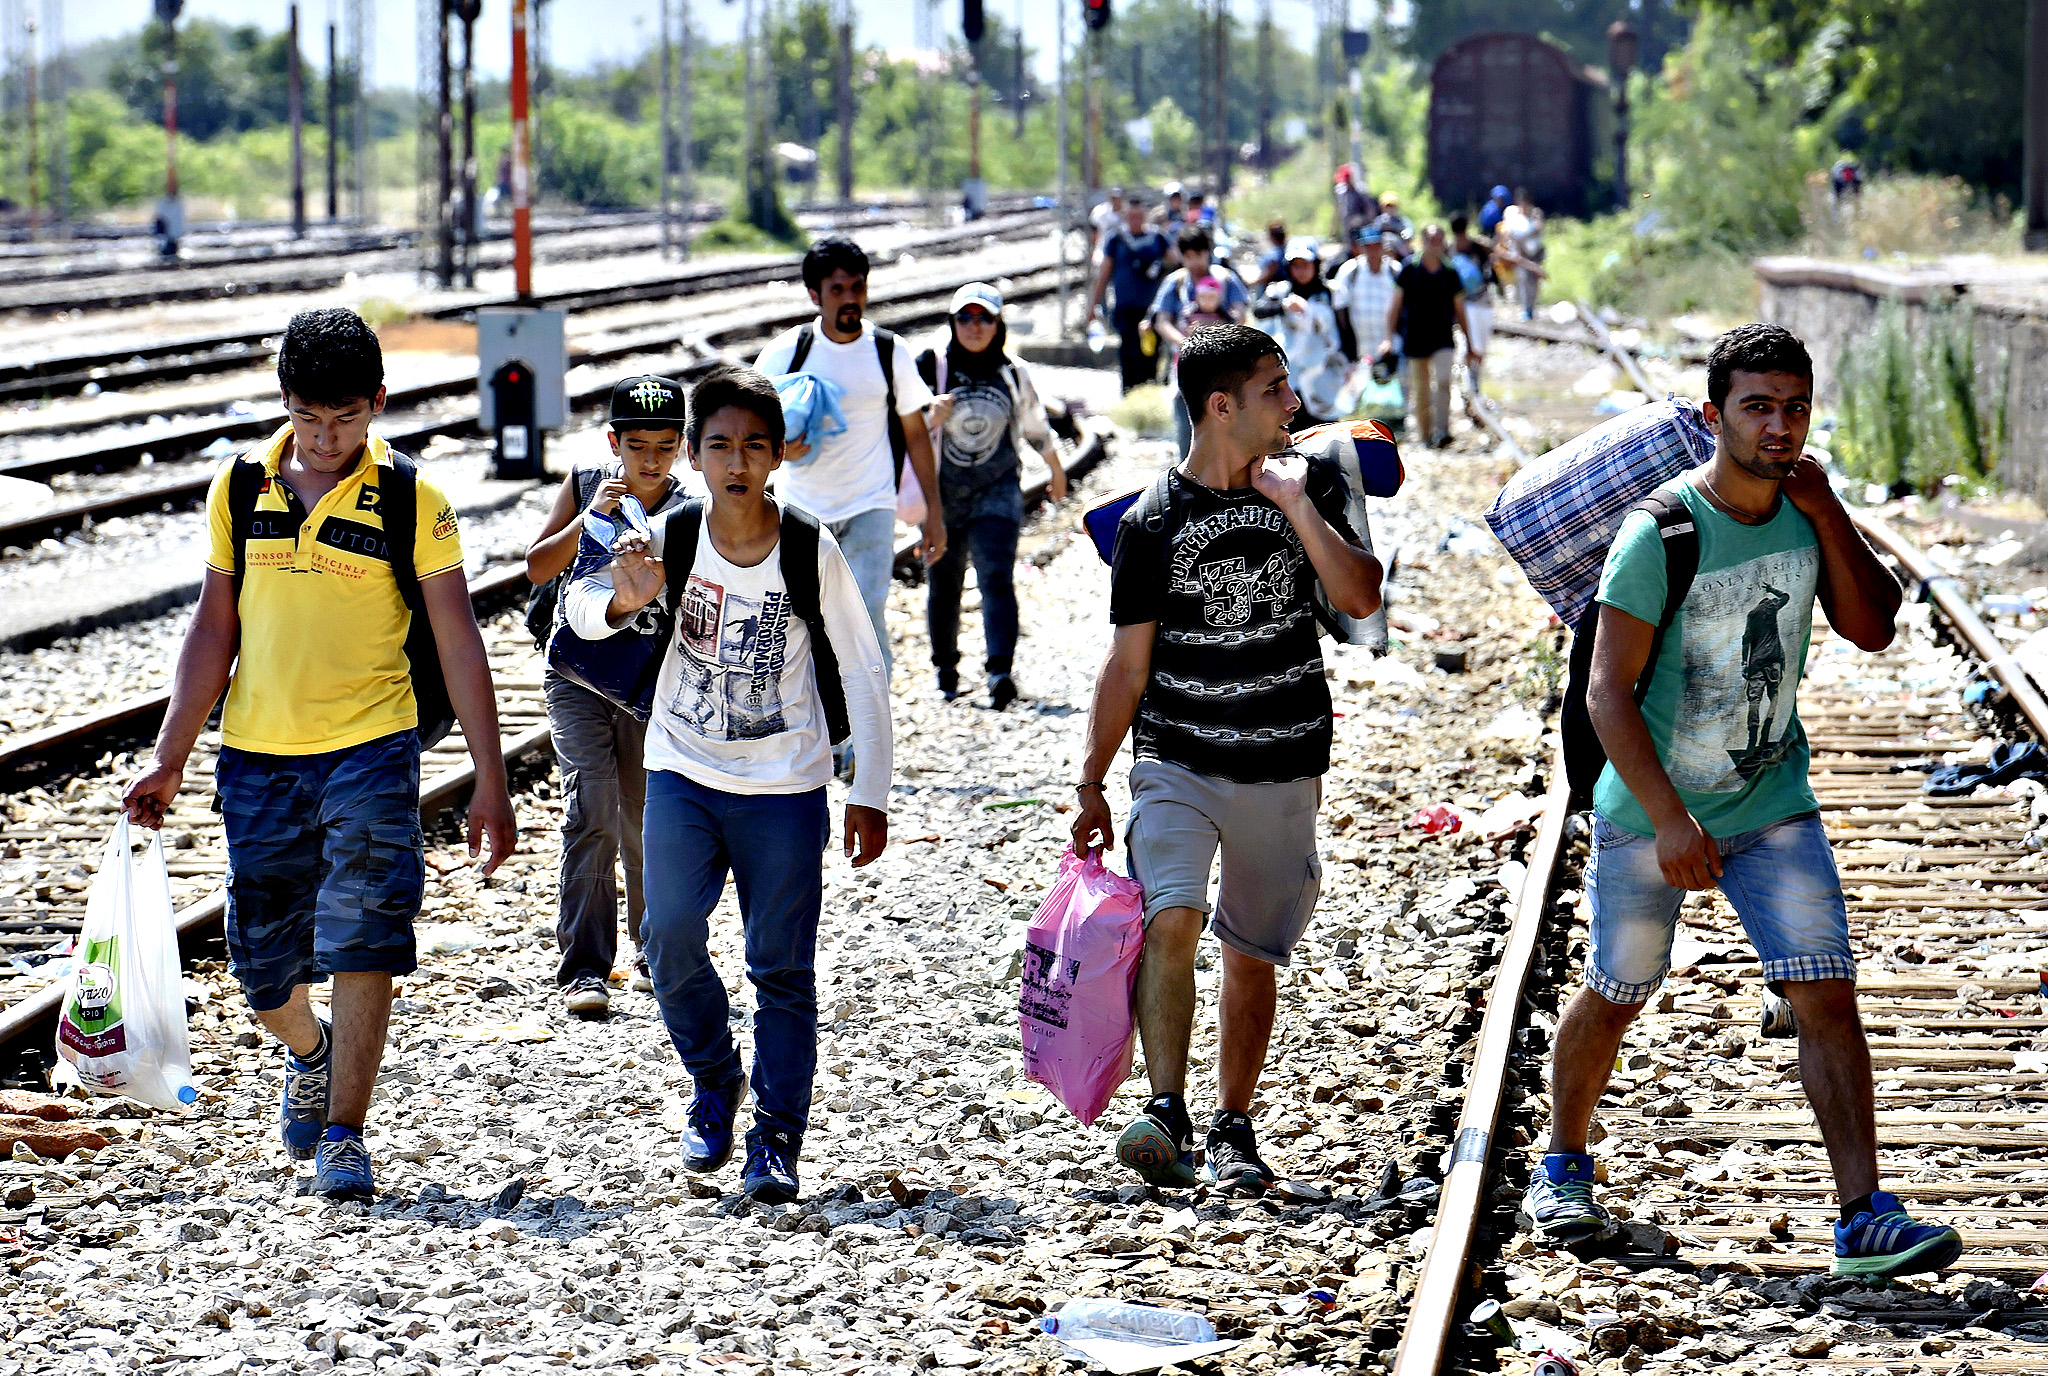 Migrants walk along railway tracks on their way to catch a train heading to the Serbian border, at the train station in Gevgelija, The Former Yugoslav Republic of Macedonia, 04 August 2015. Greece and Italy are the main entry points for Europe-bound asylum seekers and economic migrants. After they have reached the bloc, many start to make their way to wealthier countries in Western Europe. From the beginning of the year to mid-June, nearly 160,000 landed in both countries, according to International Organization for Migration (IOM) estimates